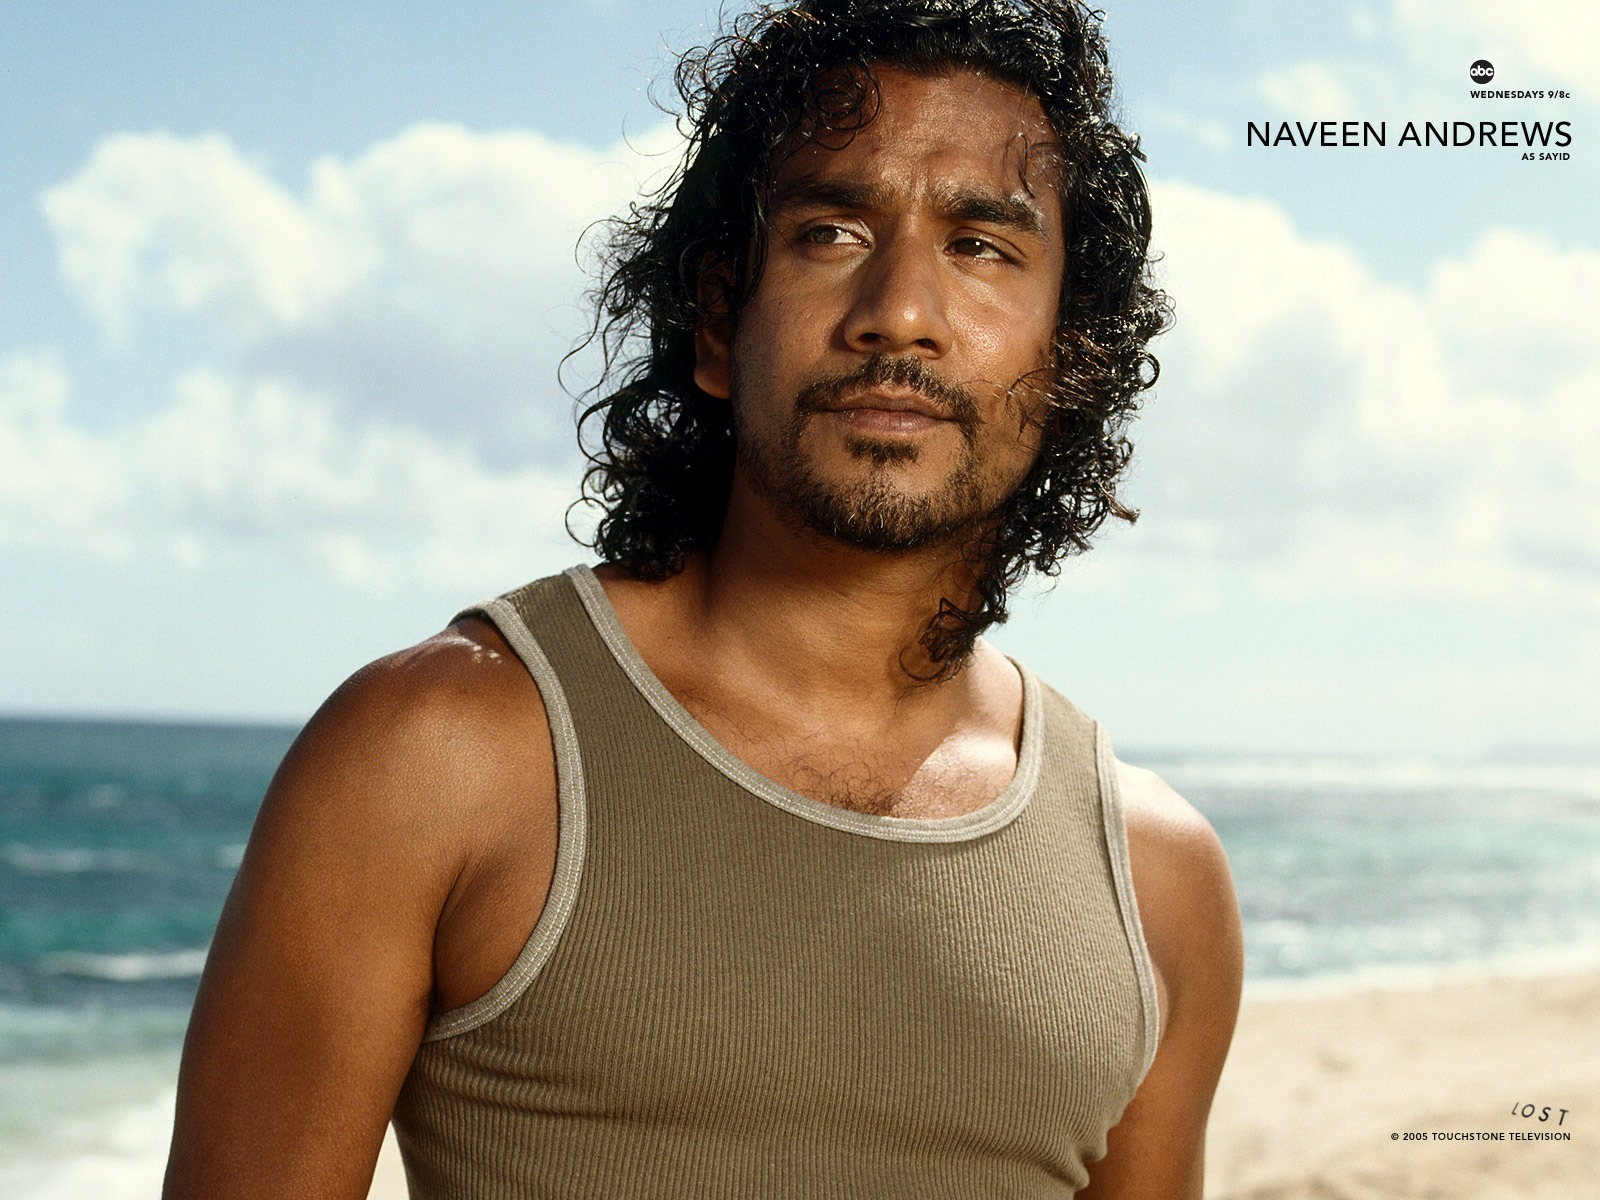 Image result for naveen andrews saeed